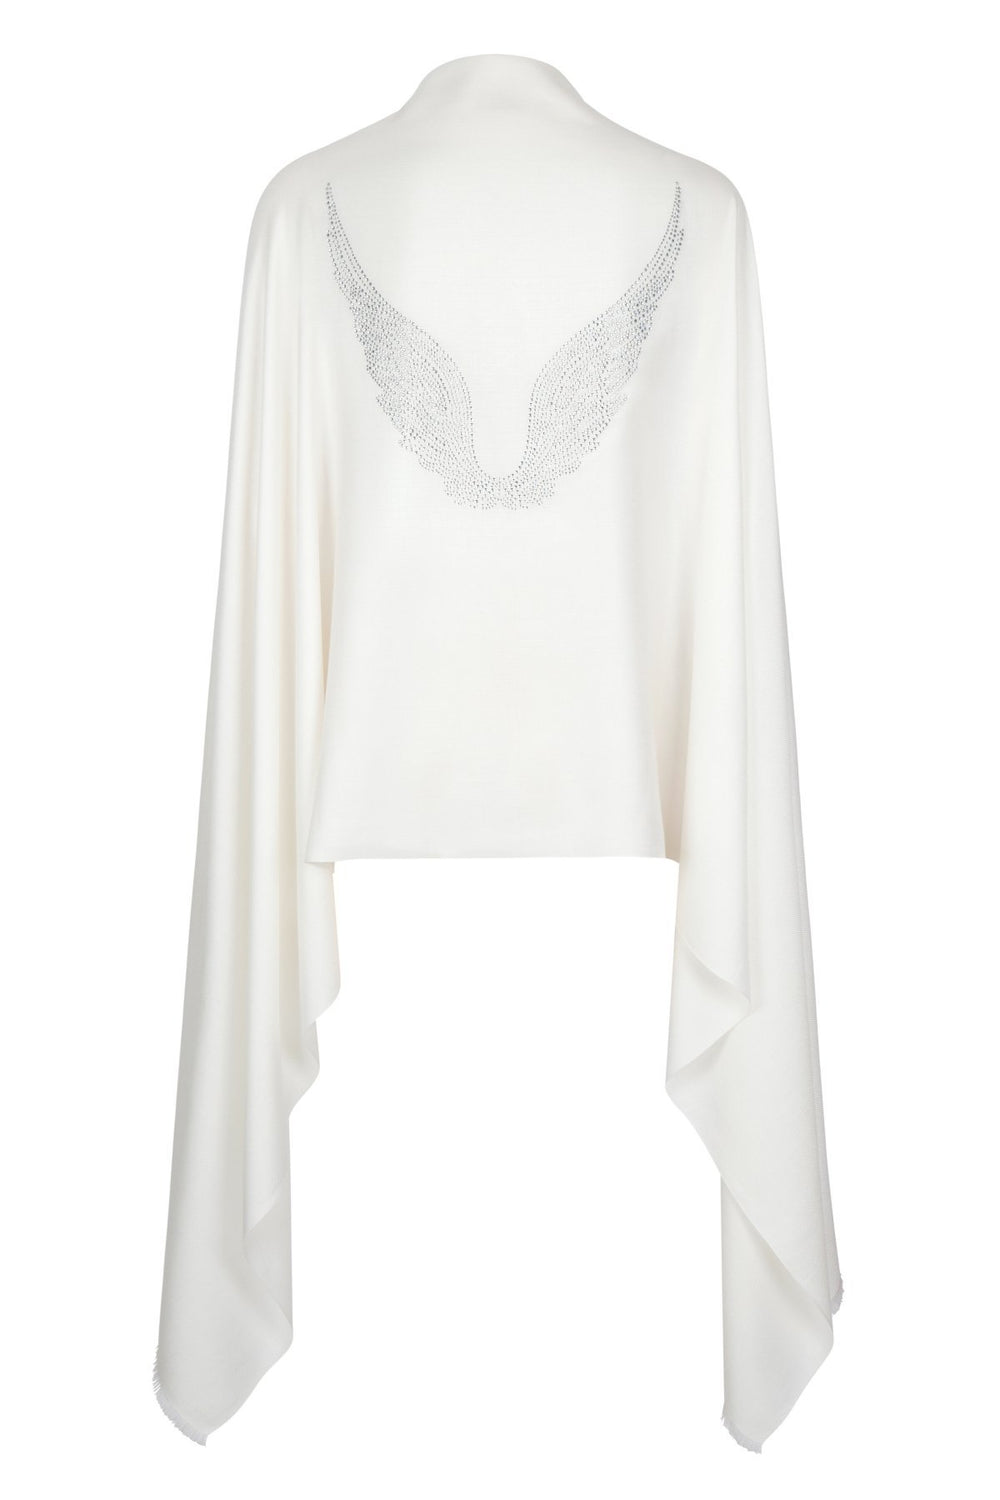 Angel Gabriel Ivory Wrap Wings Scarf for Communication, Family & Creativity